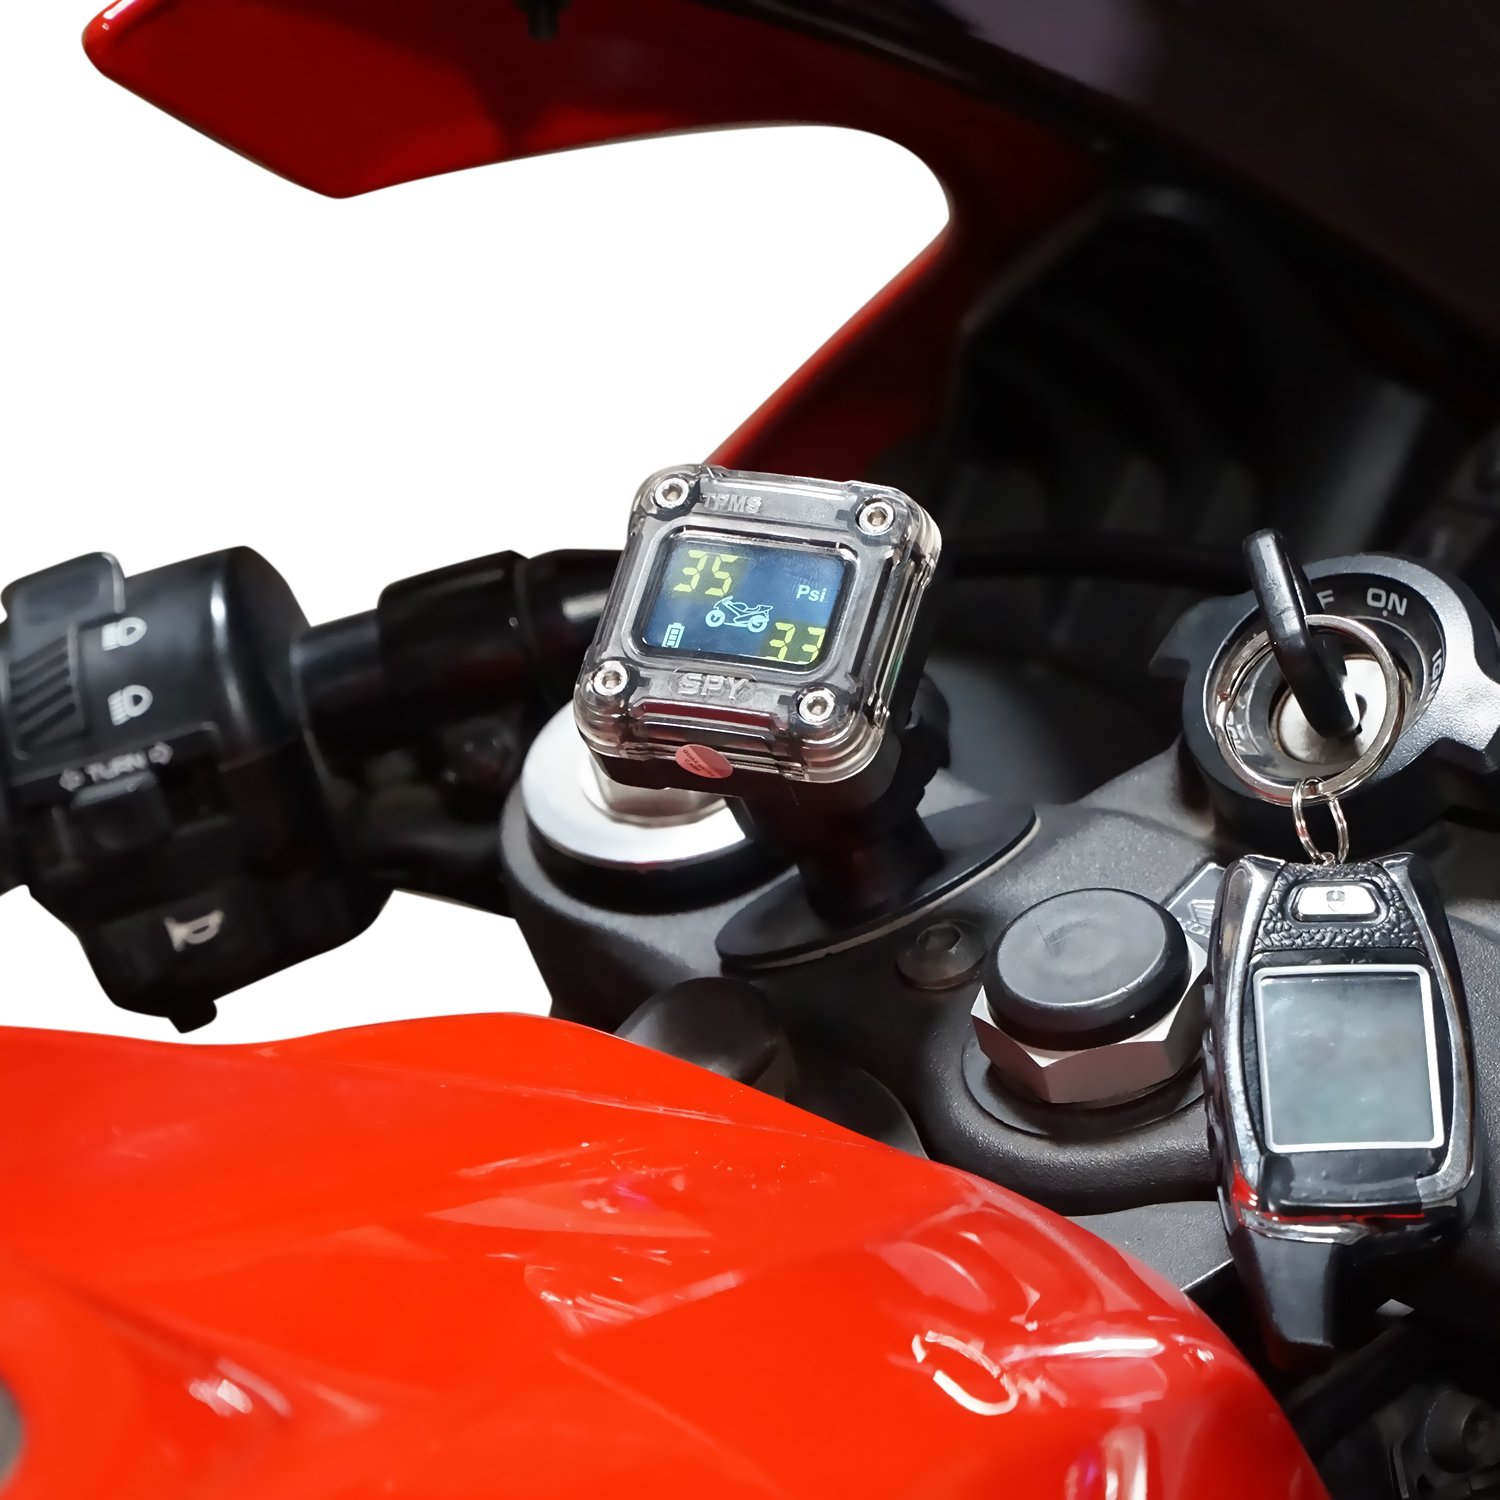 TPMS 2 Tire Set GENSSI TPMS Motorcycle Wireless Tire Pressure Monitoring System Digital LCD